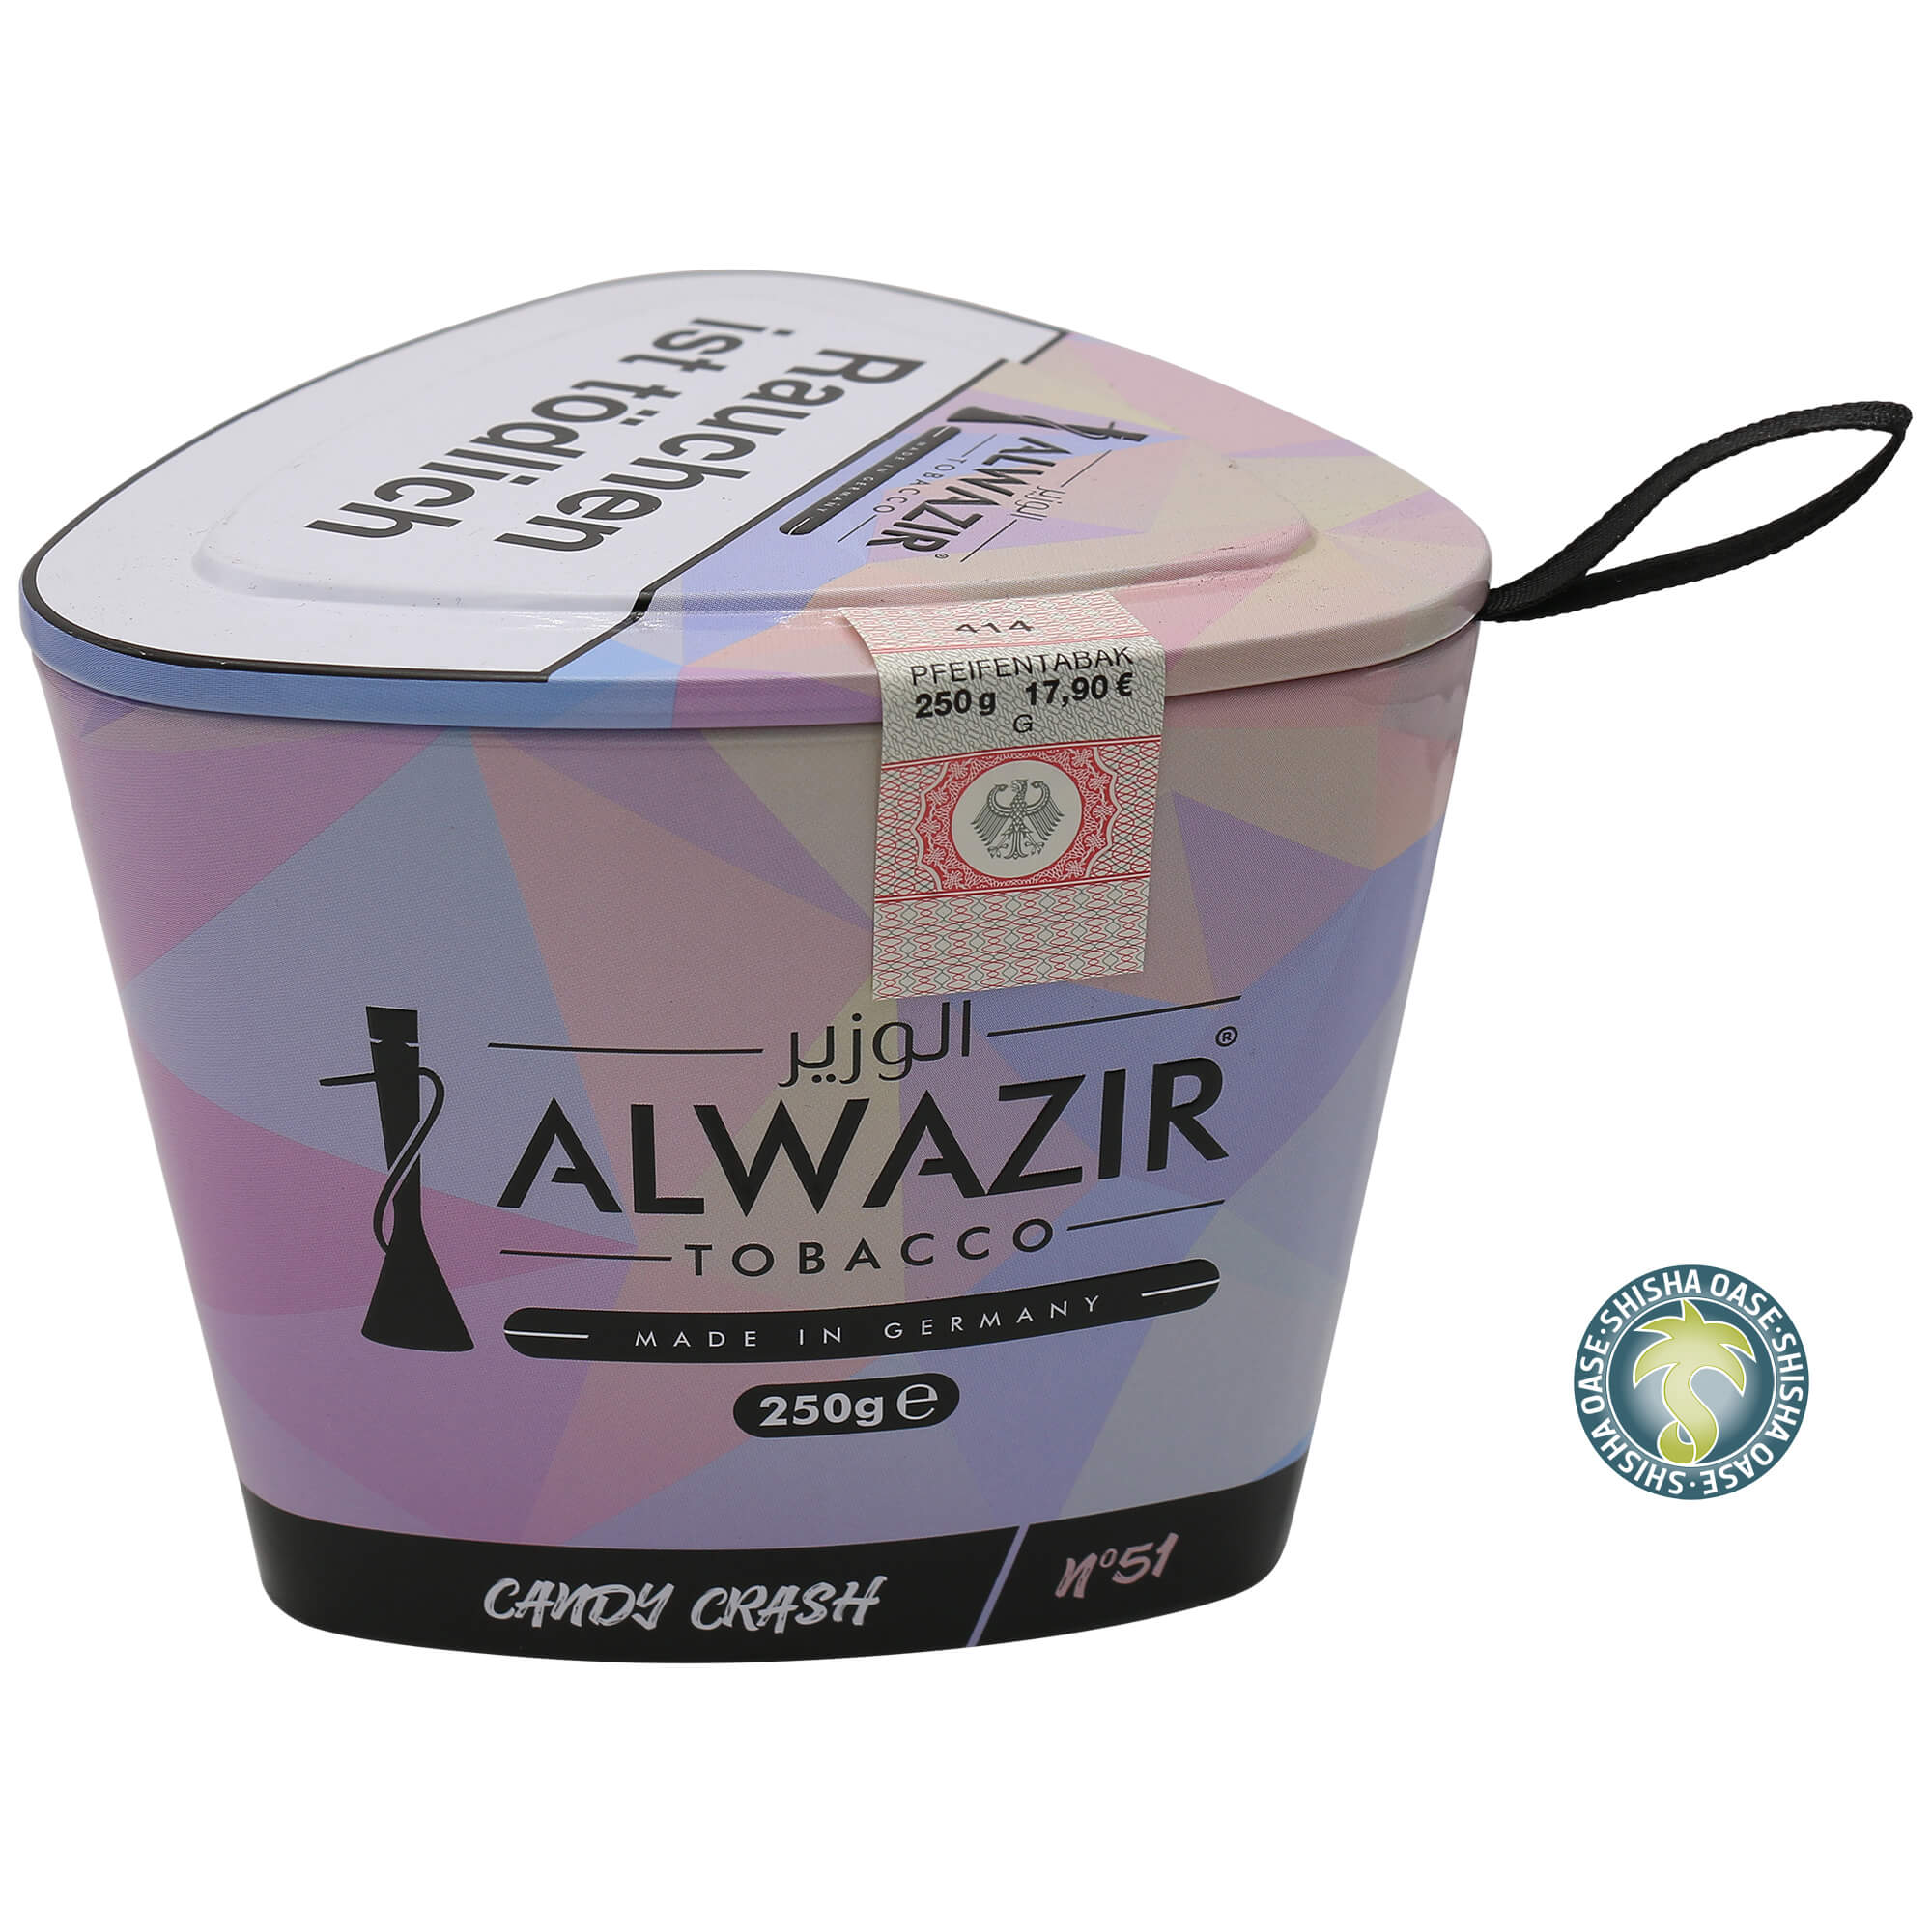 Al Wazir Tabak 250g Dose - Candy Crash No.51